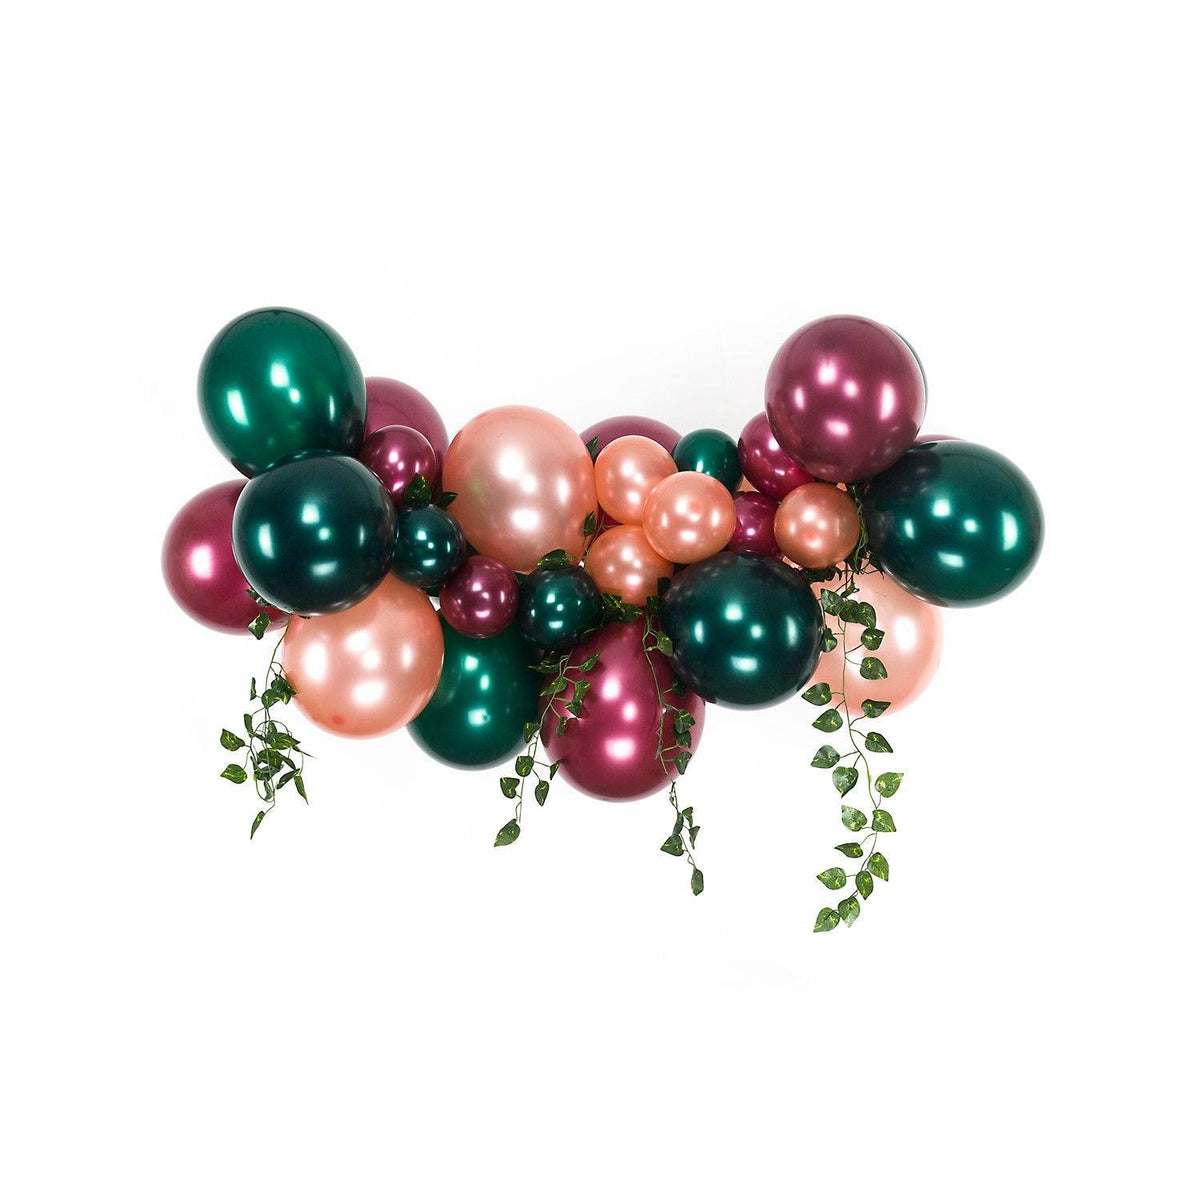 Forest Green Burgundy And Rose Gold Balloon Arch And Garland Kit With Shimmer Confetti